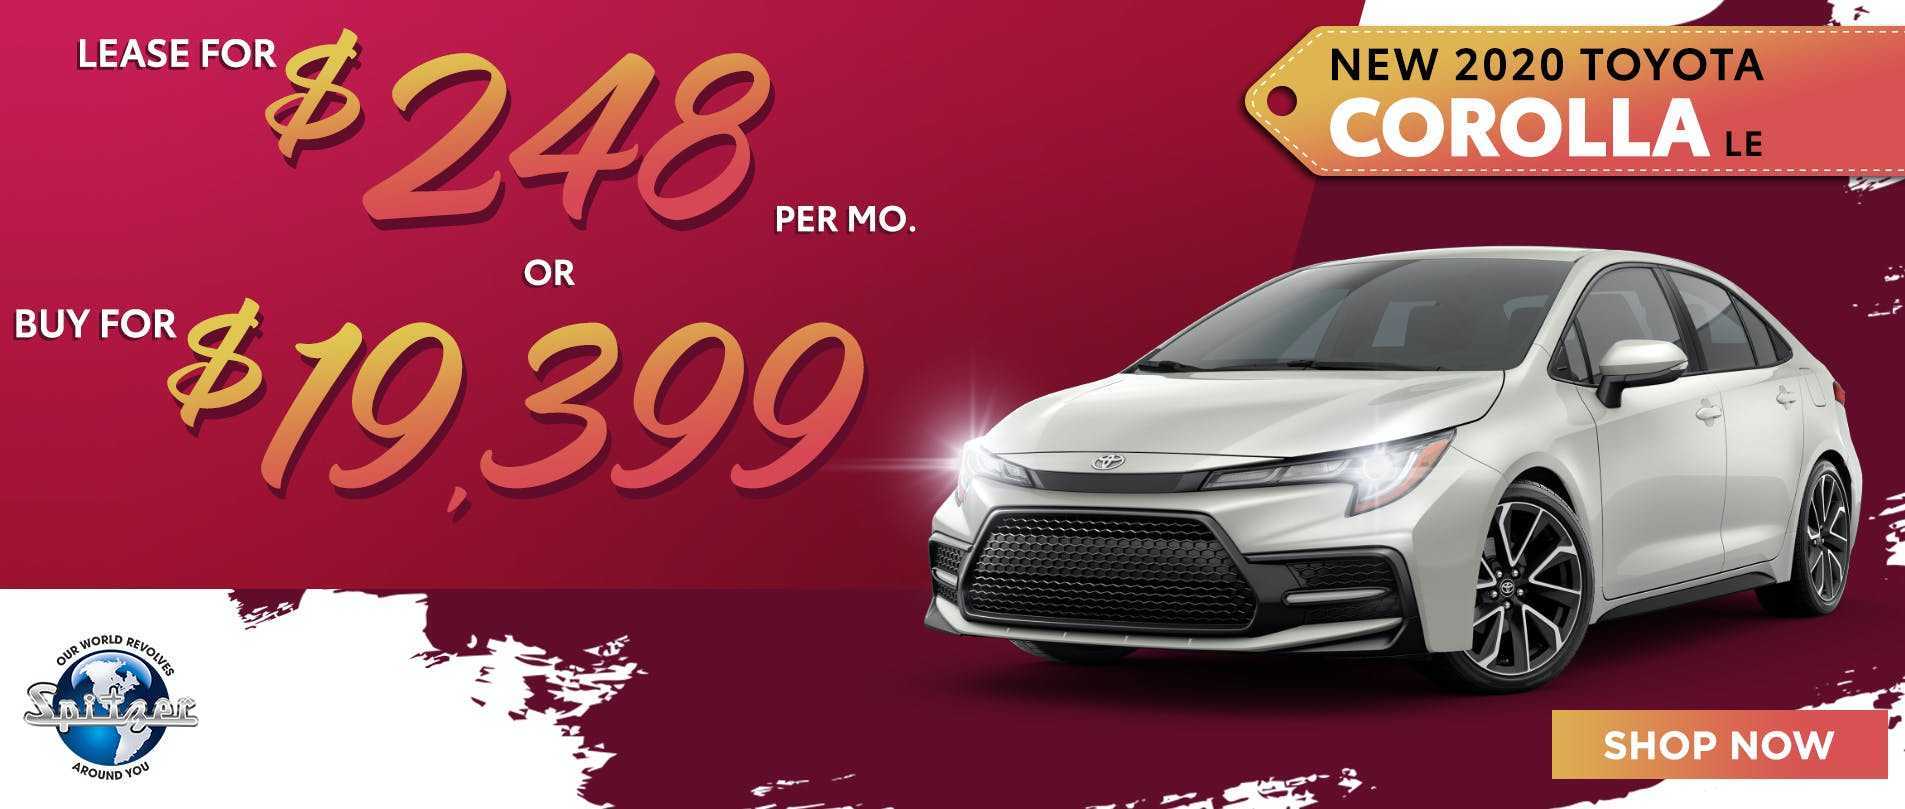 Corolla   Lease for $248 or buy for $19,399